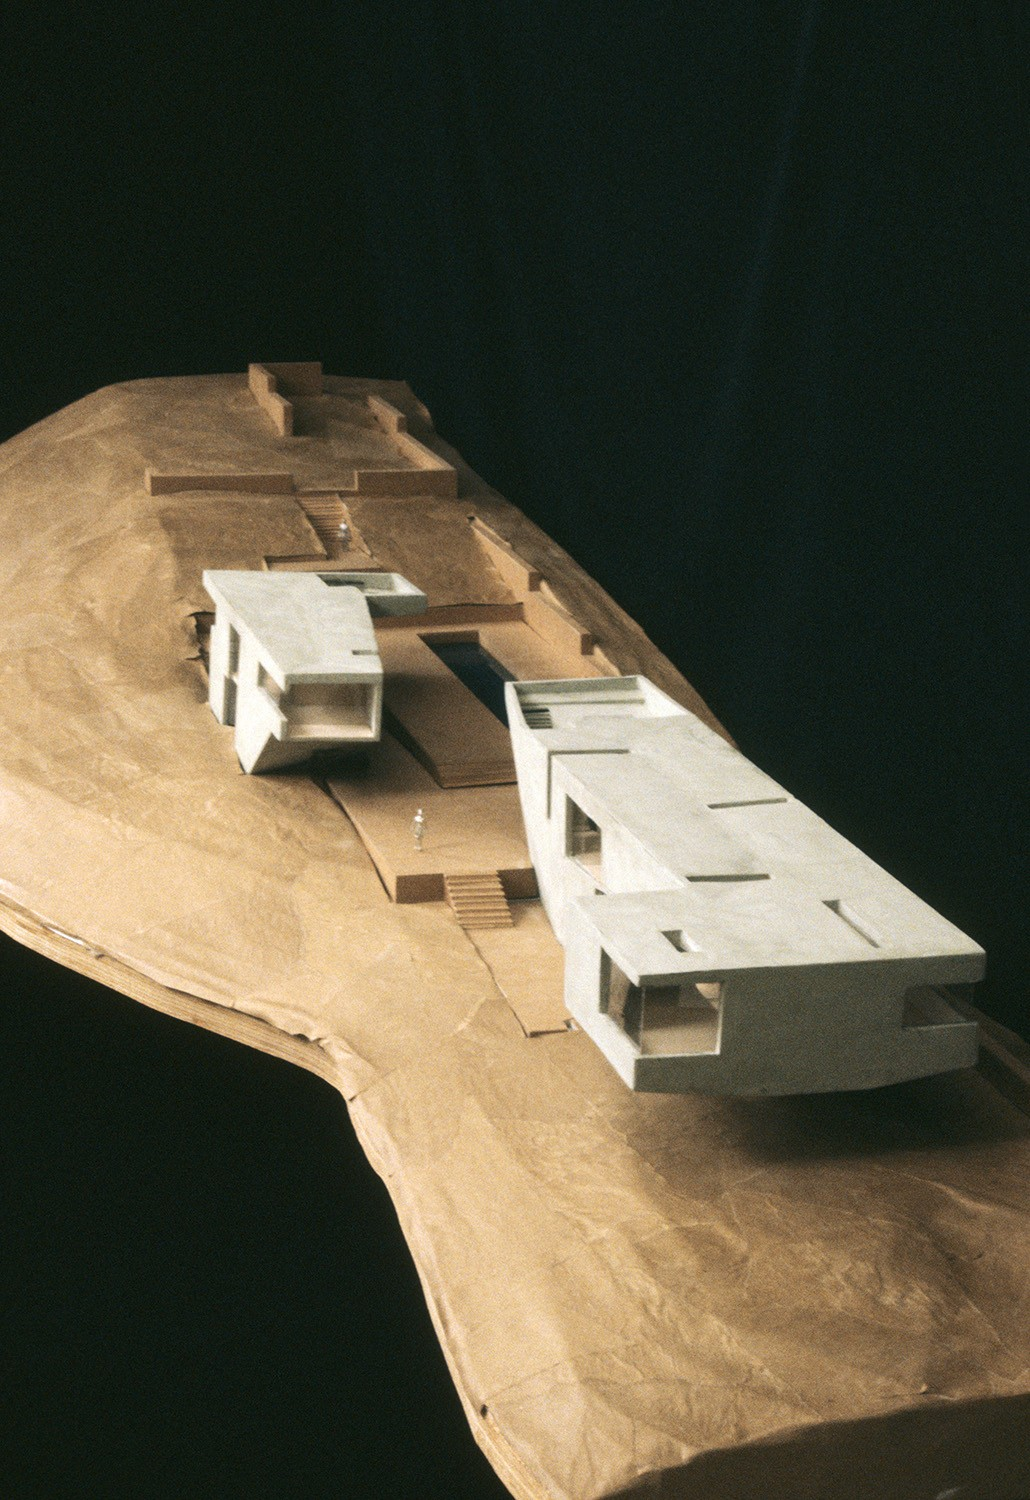 https://stevenholl.sfo2.digitaloceanspaces.com/uploads/projects/project-images/StevenHollArchitects_Oceanic_OceanicRetreatmodel2_WV.jpg